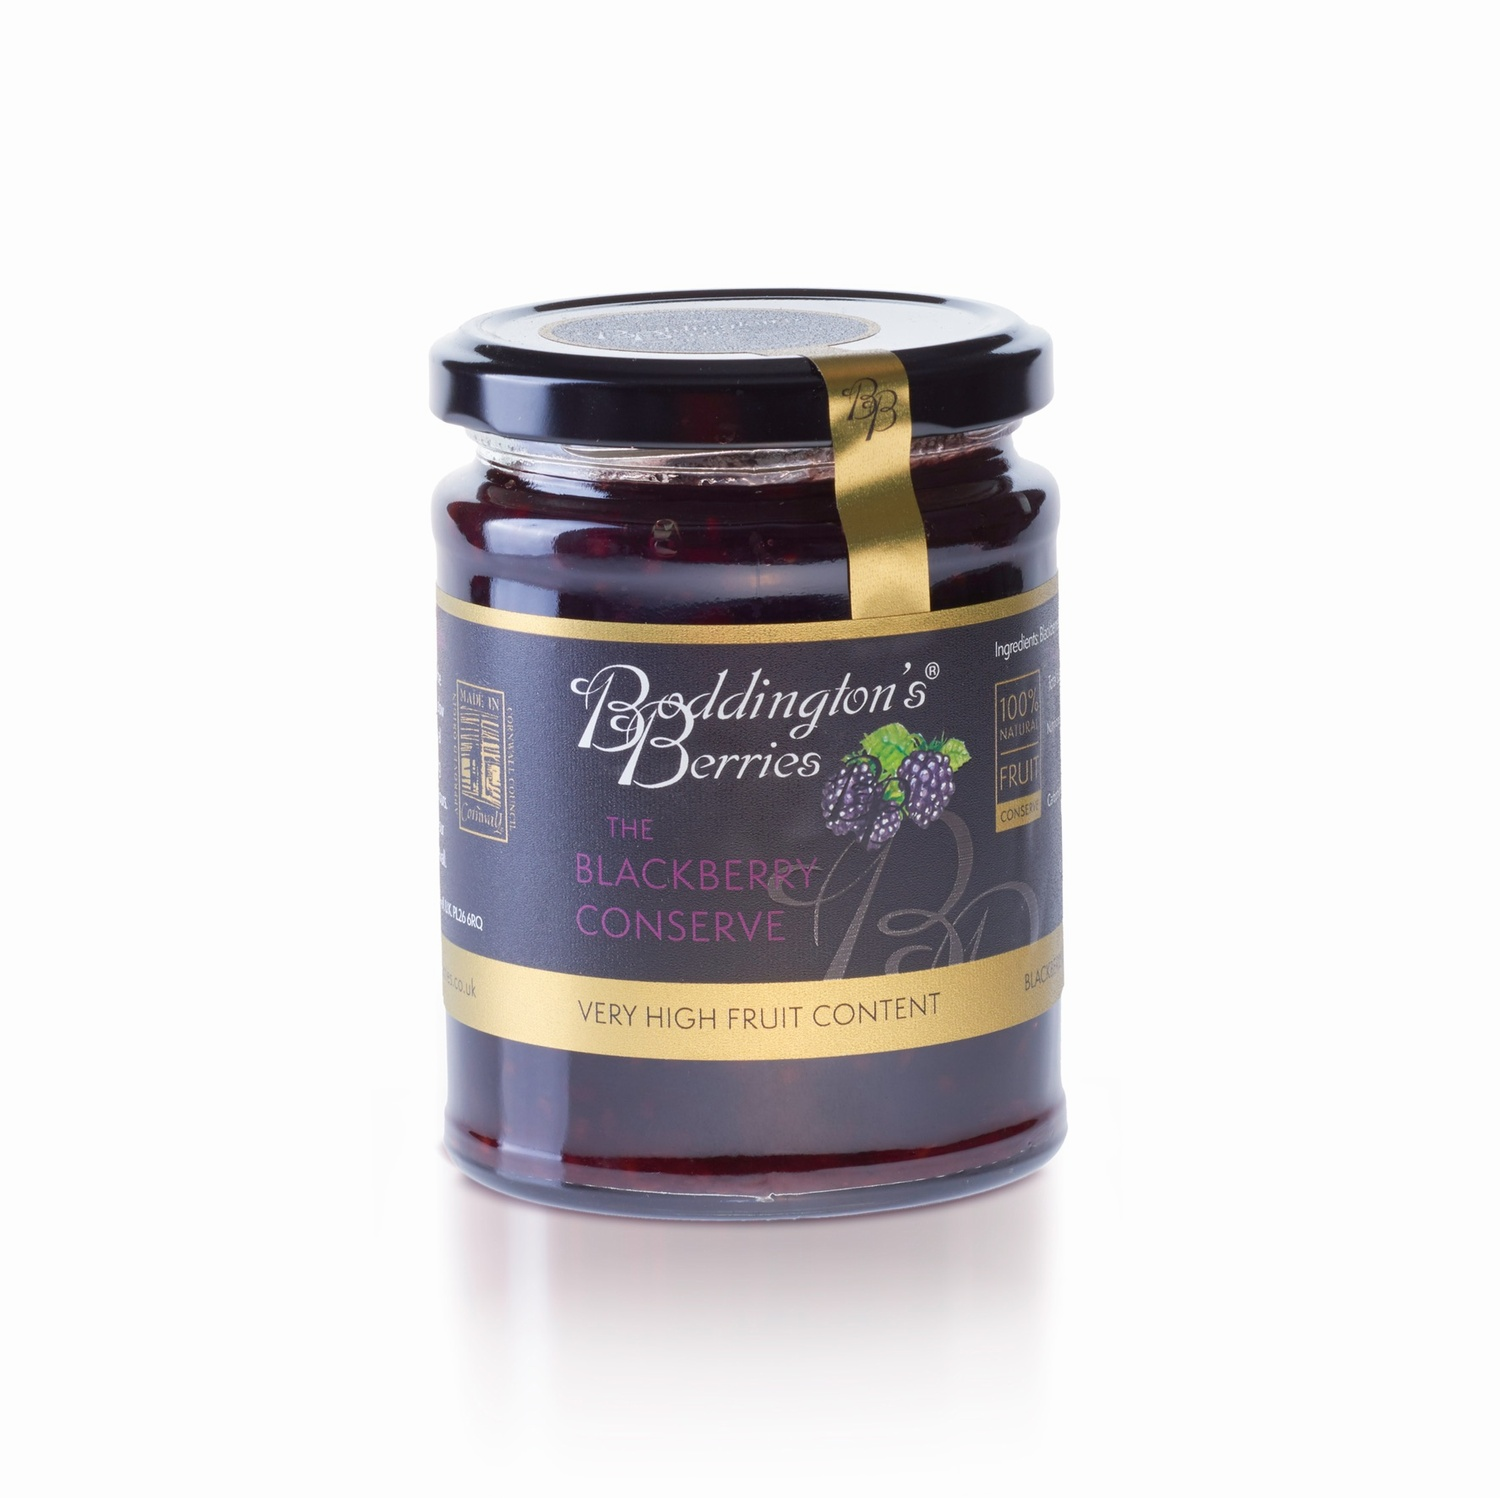 Blackberry Conserve - 340g Jar Blackberry Conserve